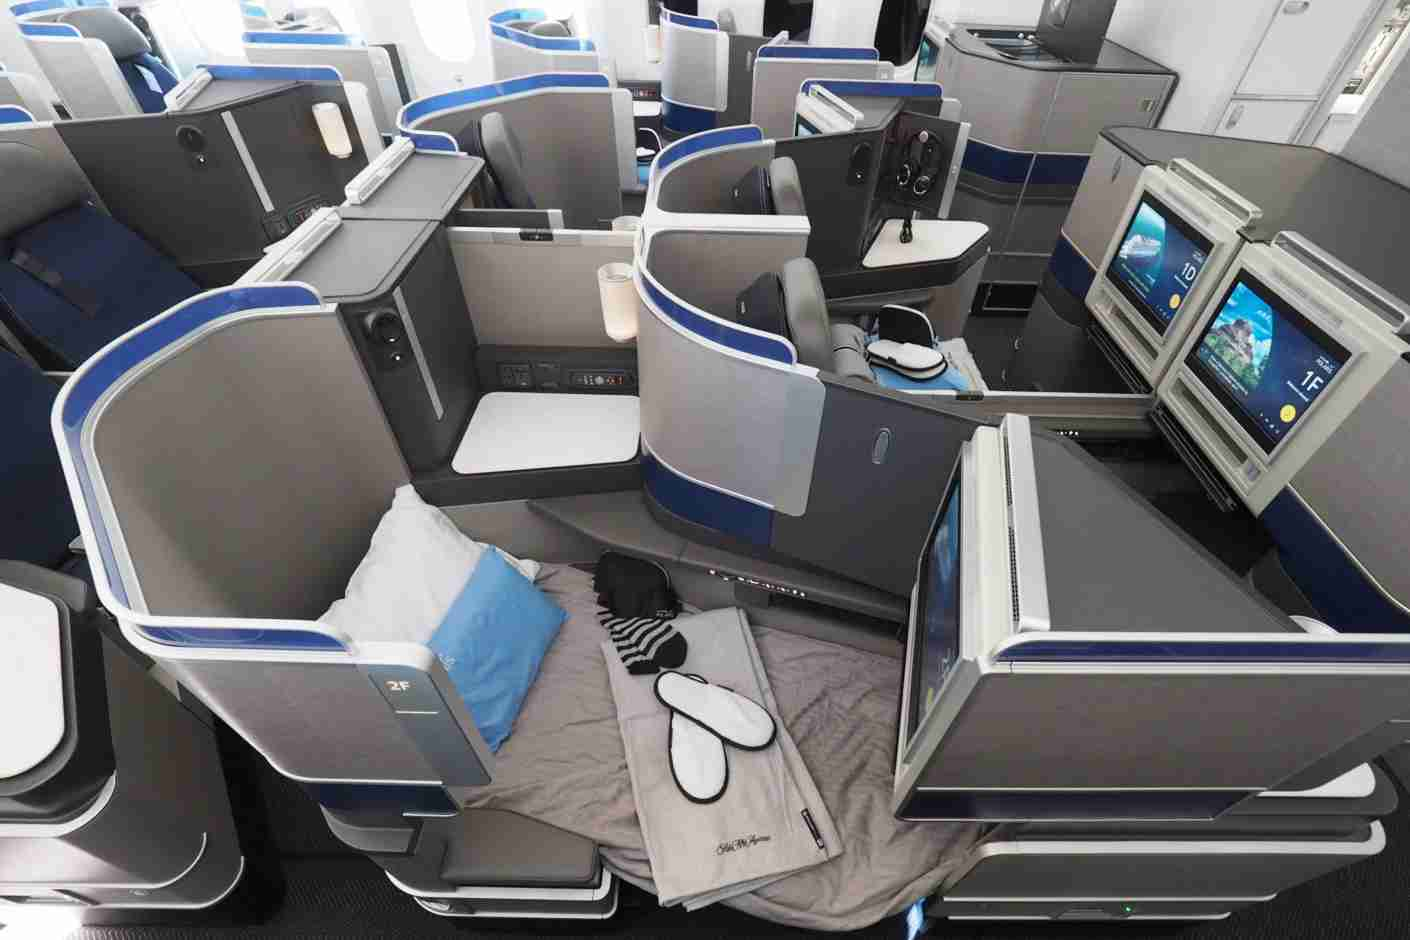 Flying in a shiny new Polaris cabin could end up saving you a decent amount of miles